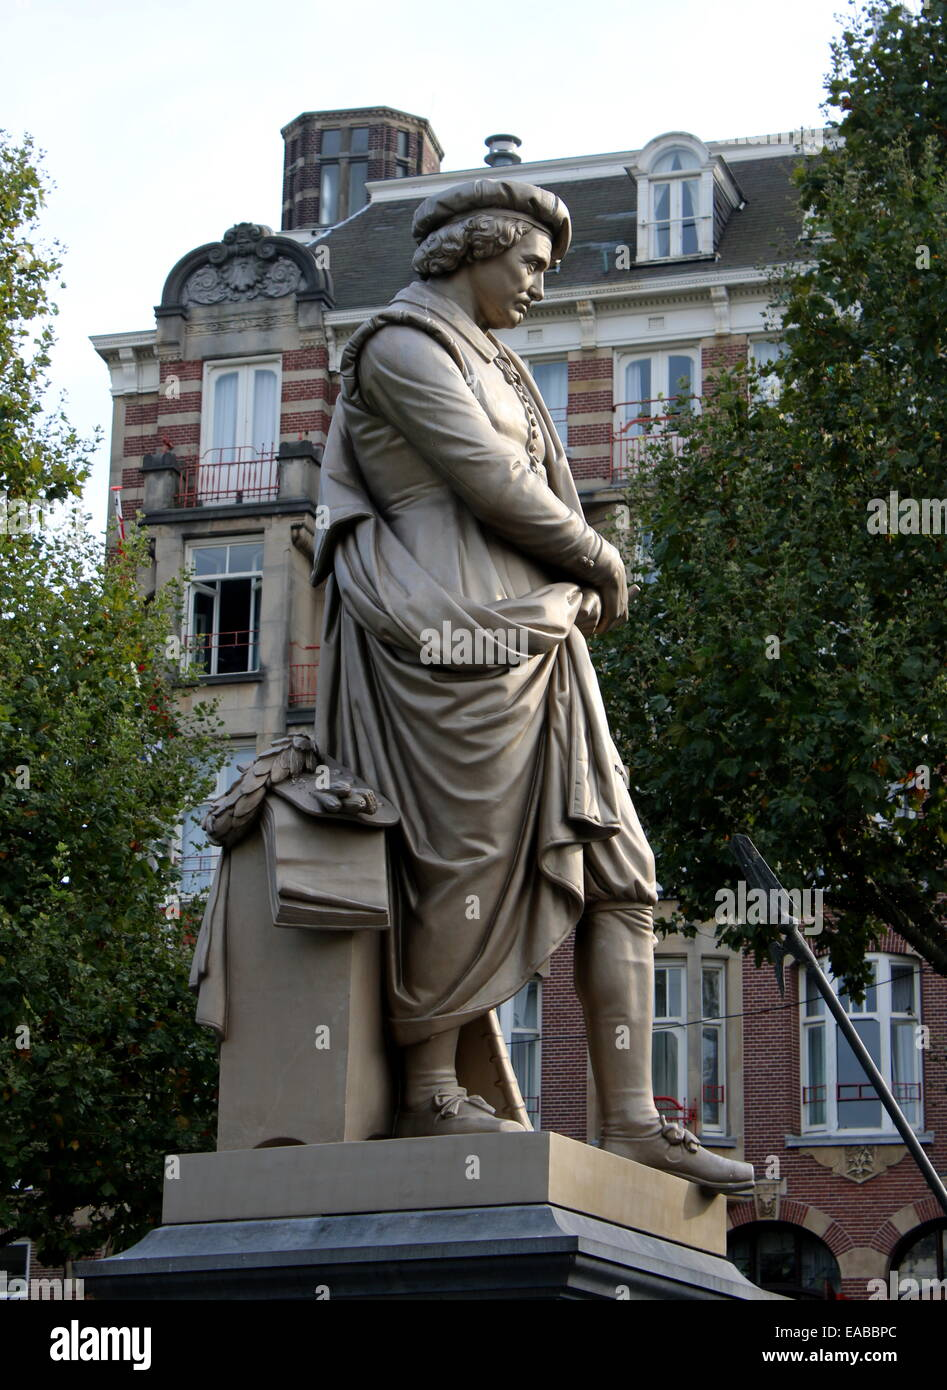 Large bronze Rembrandt Statue at Rembrandtplein, inner city of Amsterdam The Netherlands. Sculpted  by Louis Royer - Stock Image